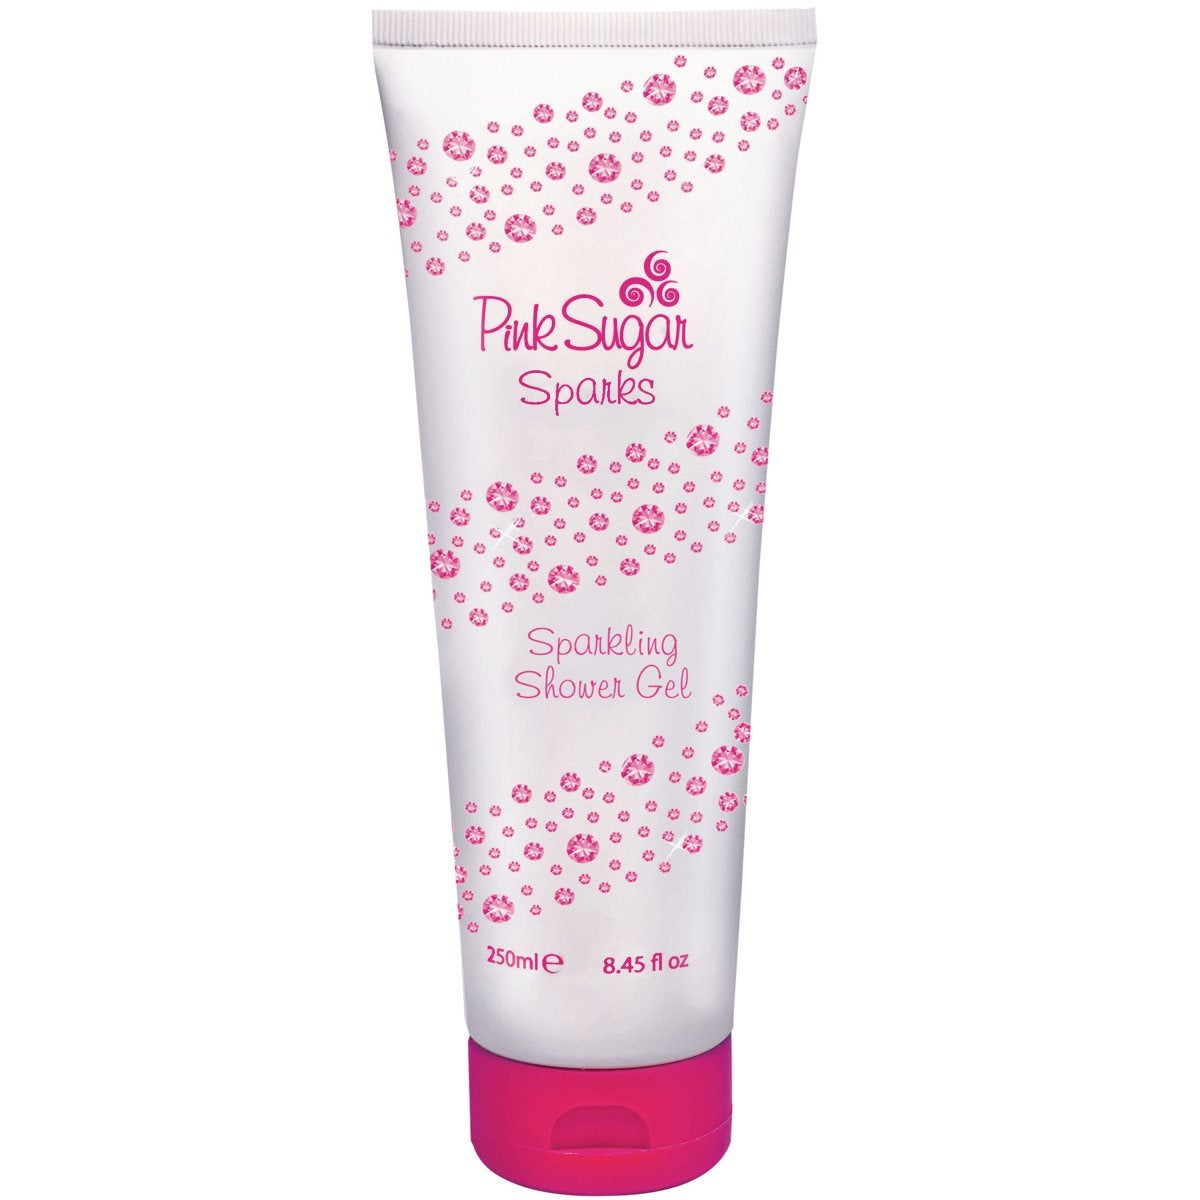 Aquolina Pink Sugar Sparks Sparkling Shower Gel